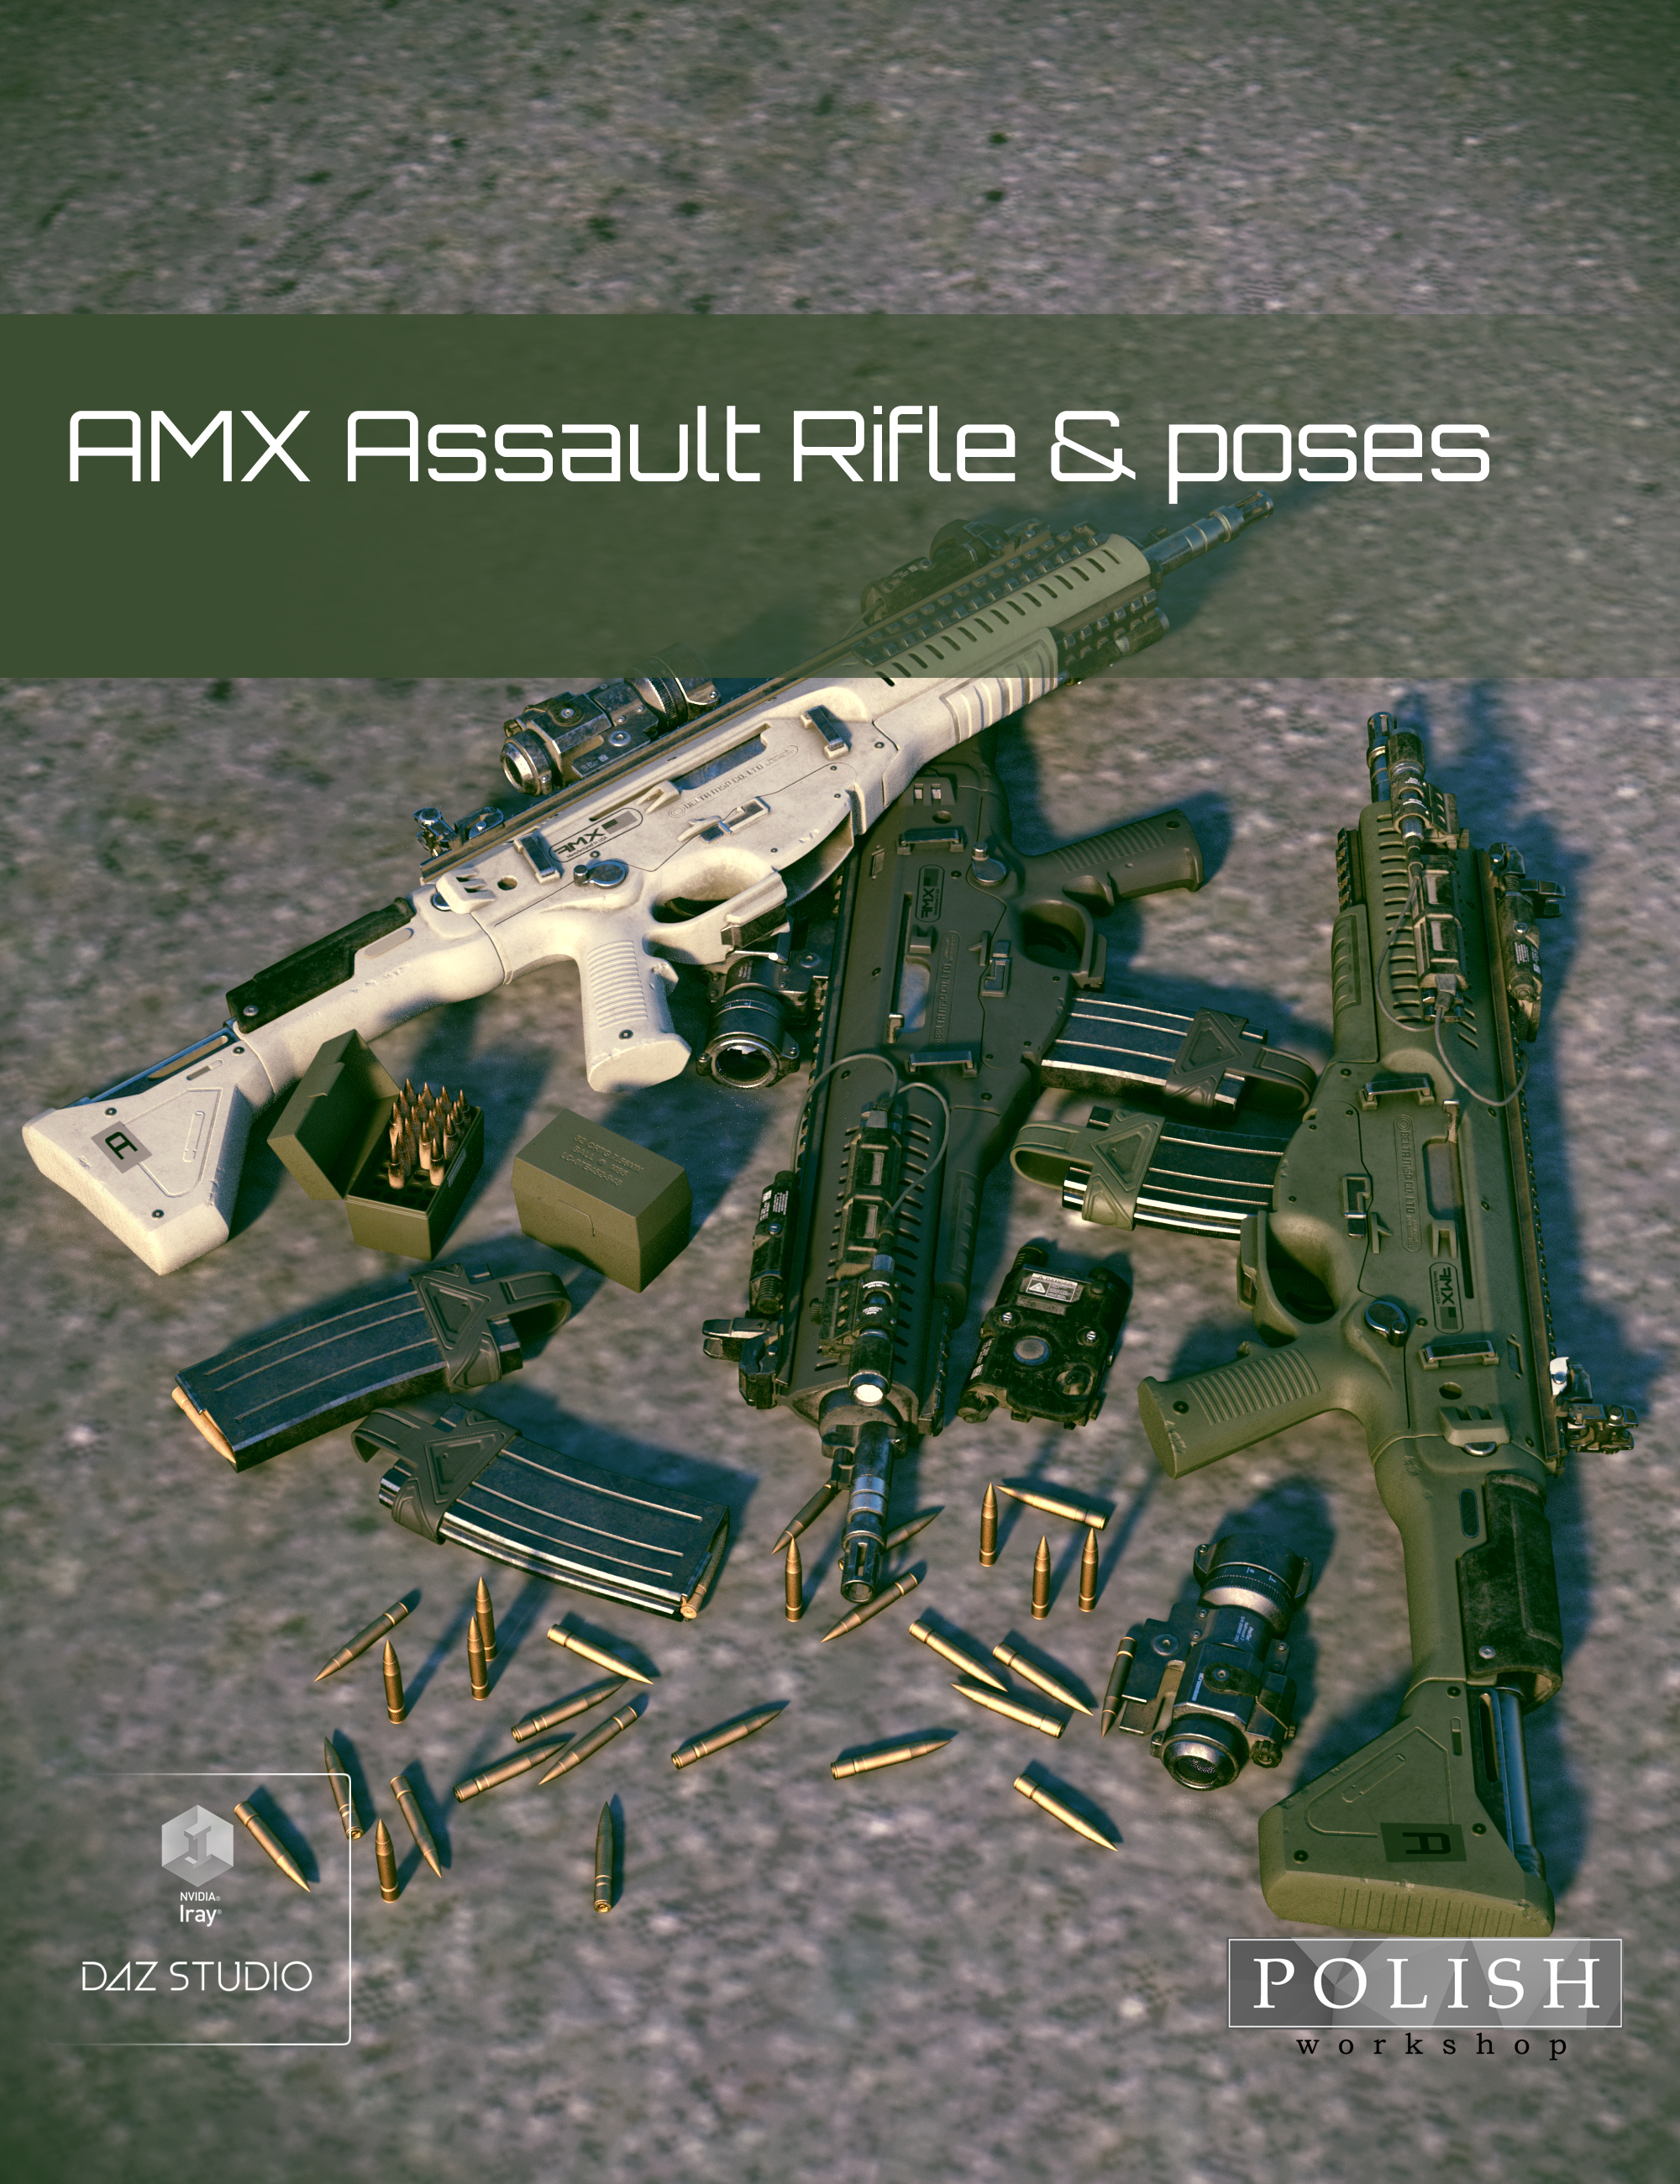 AMX Assault Rifle and Poses by: Polish, 3D Models by Daz 3D